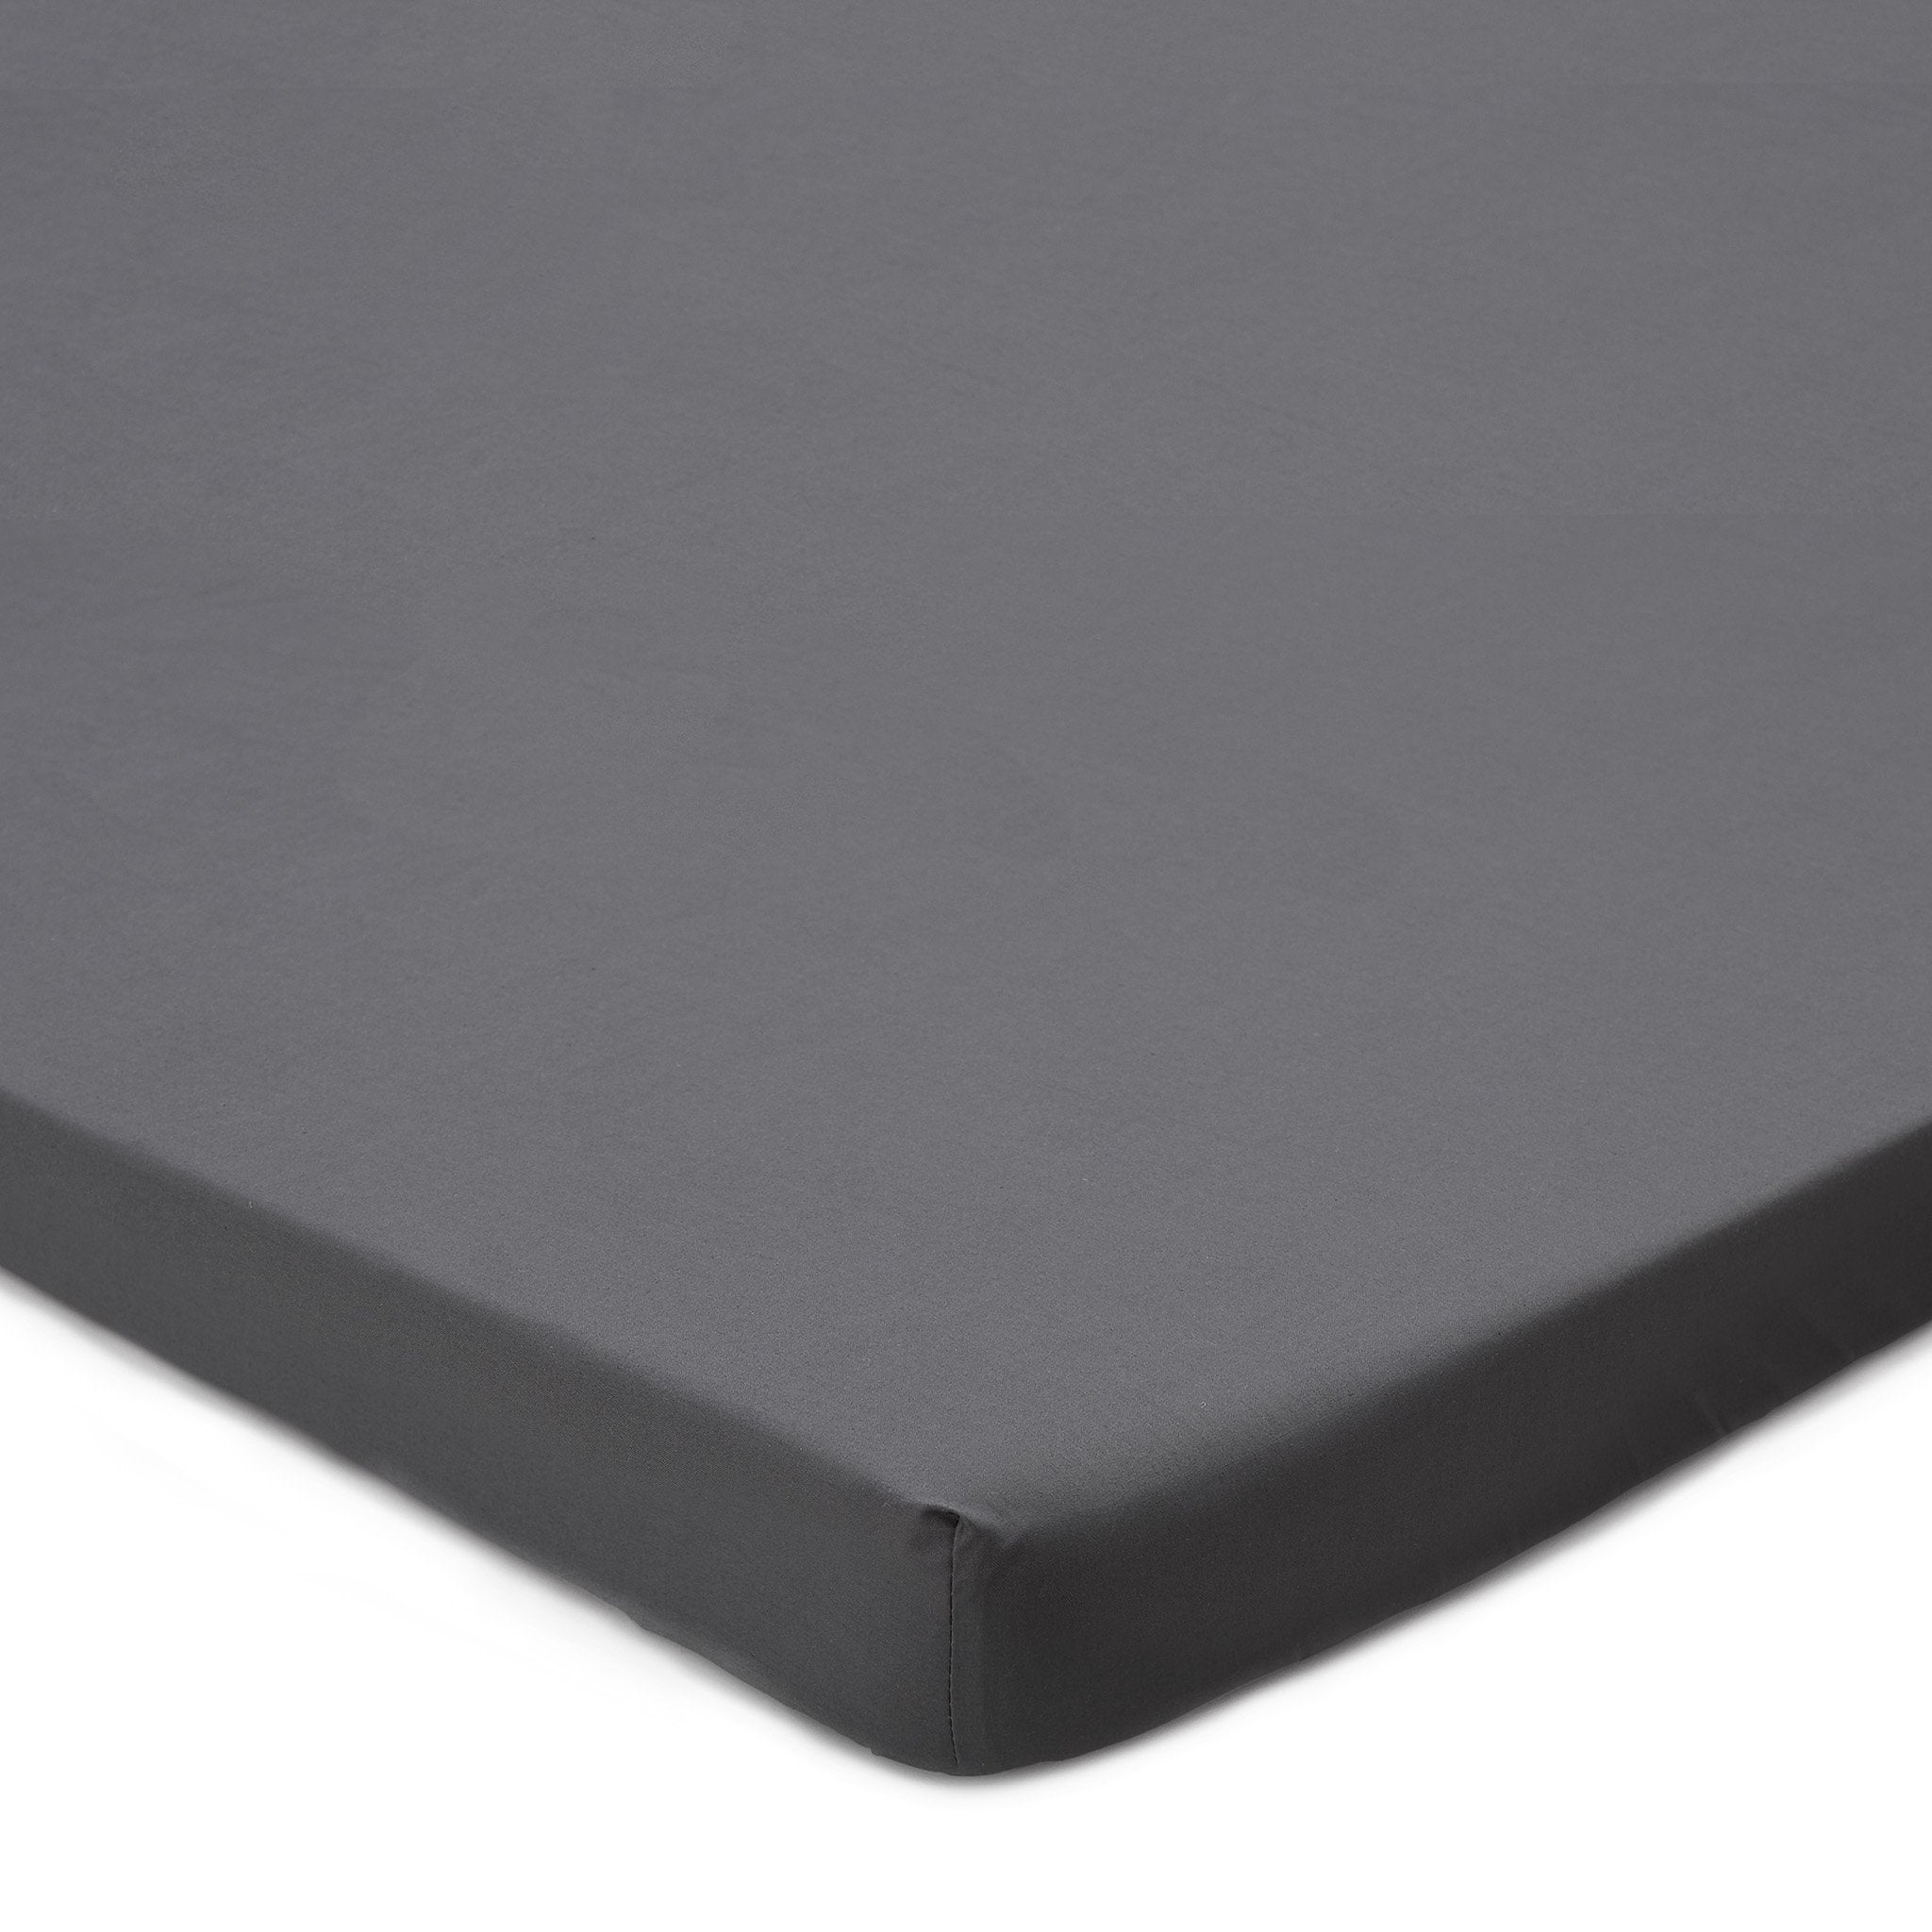 Perpignan Topper Fitted Sheet [Grey]